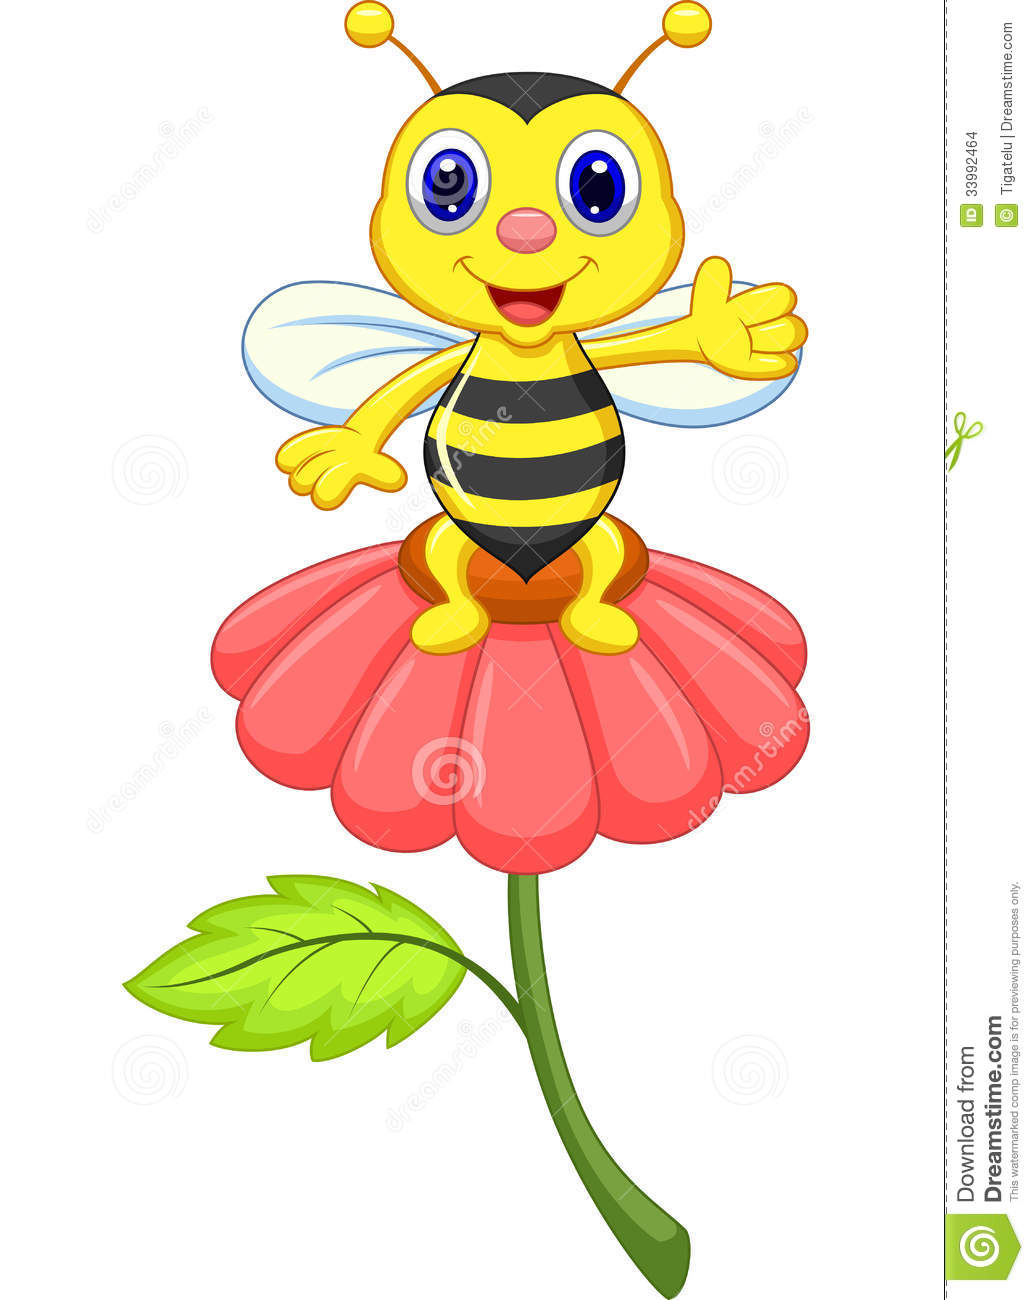 Cute Little Bee Cartoon On Red Flower Stock Images - Image: 33992464